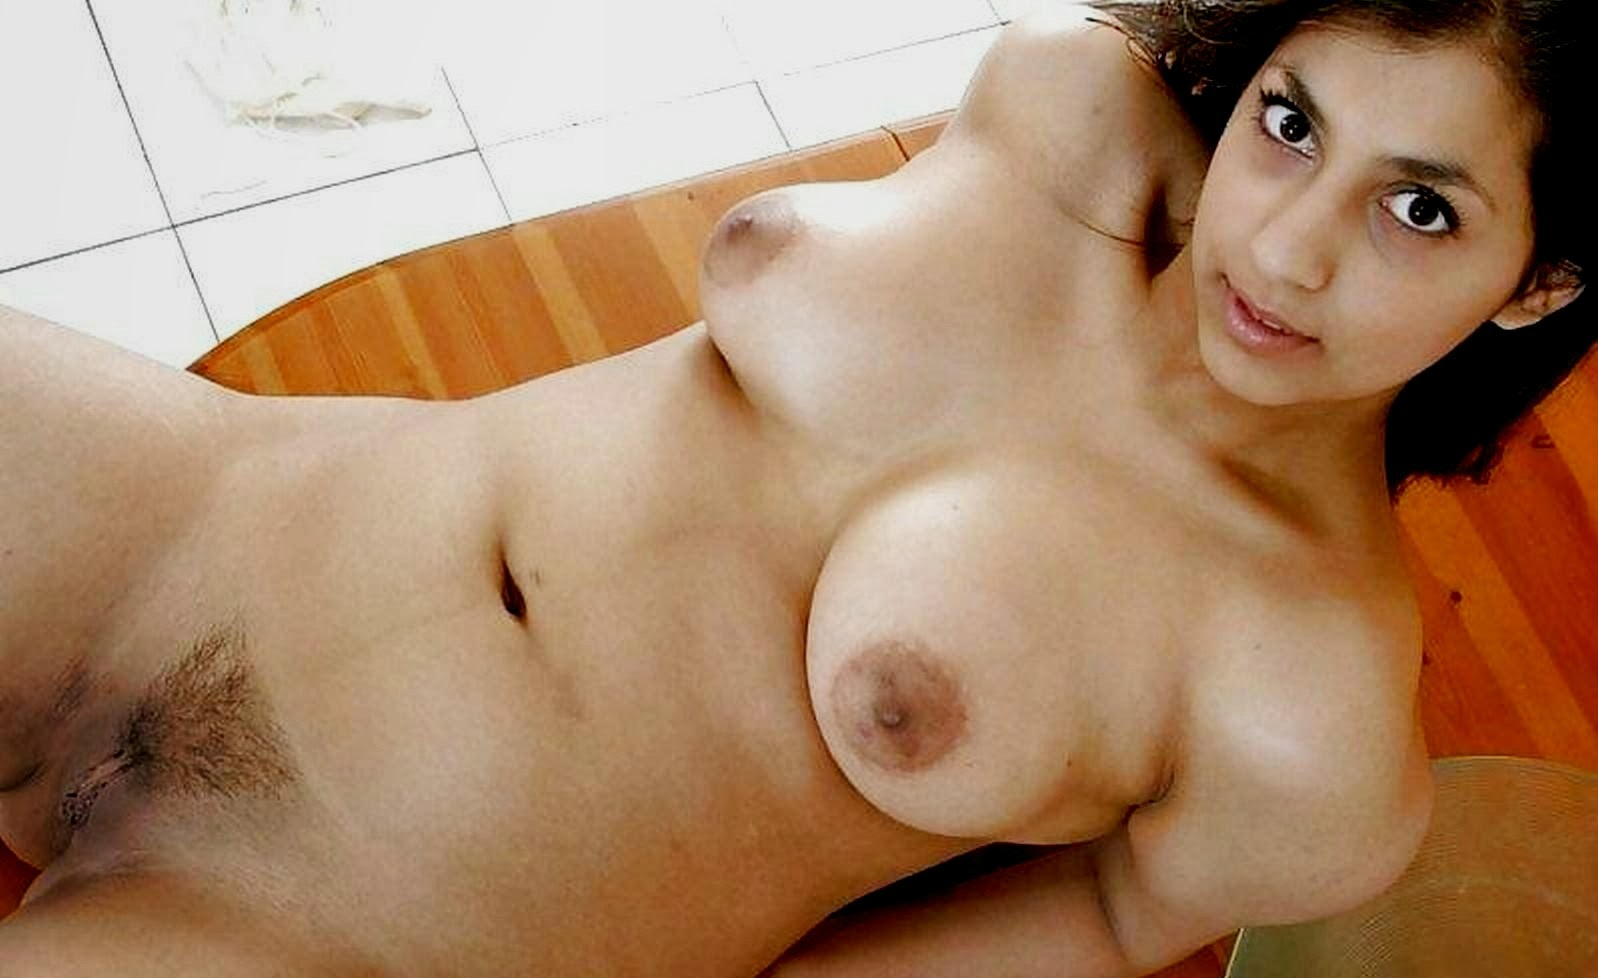 Naked middle eastern women nude